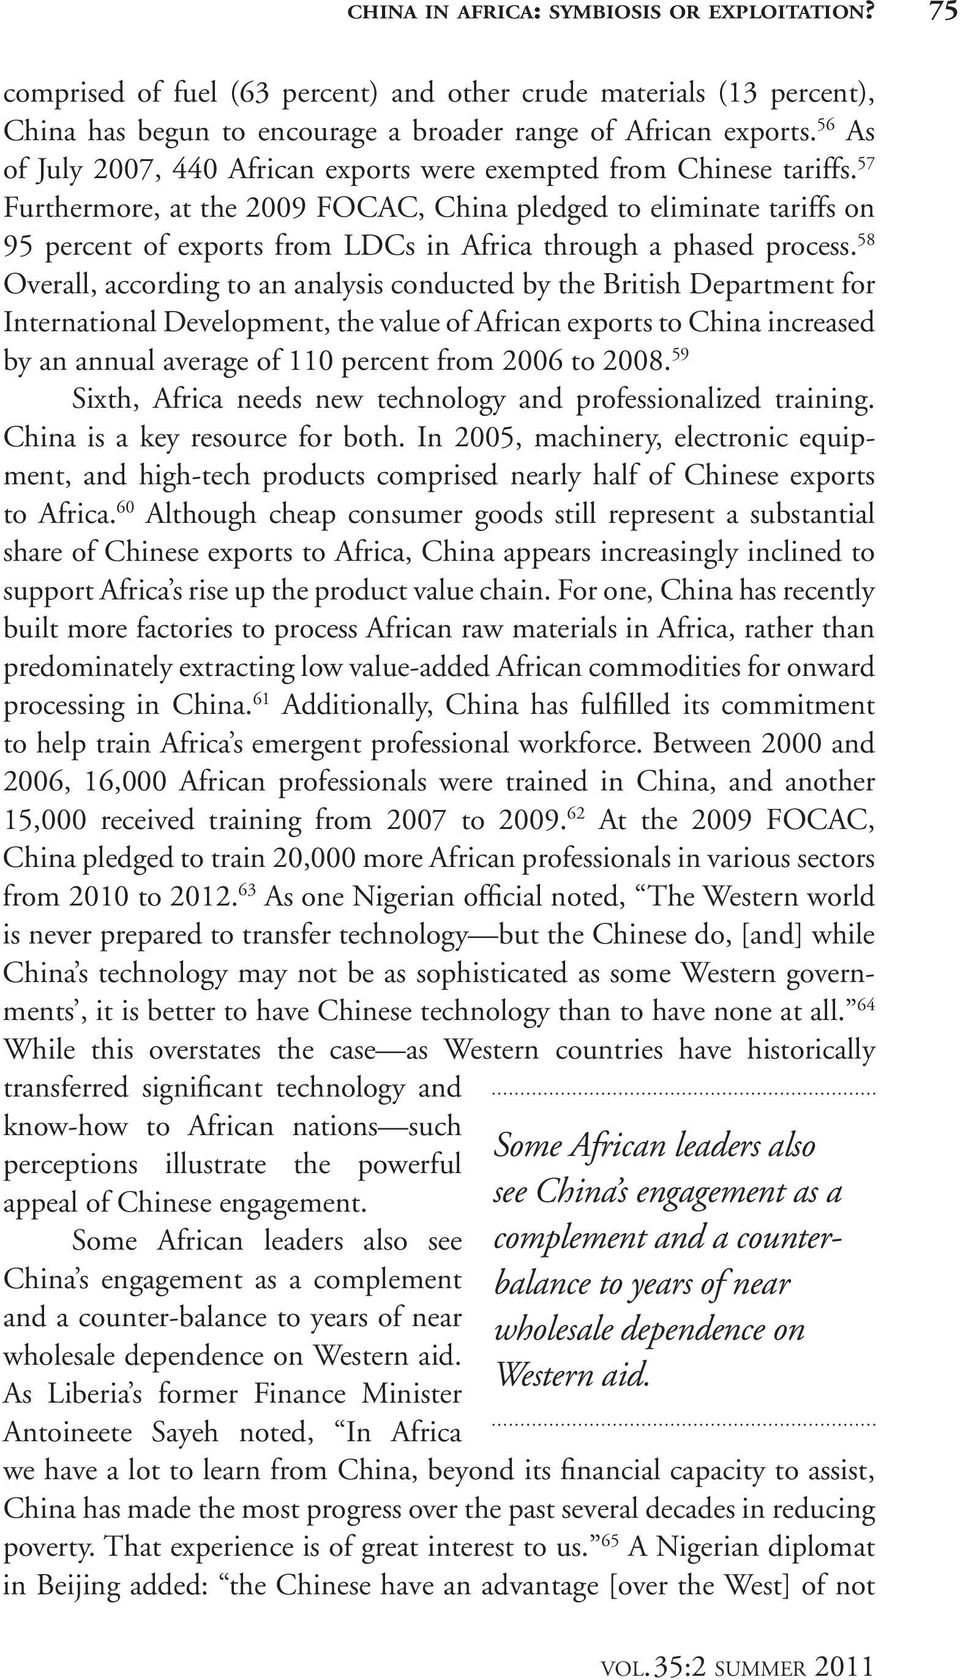 57 Furthermore, at the 2009 FOCAC, China pledged to eliminate tariffs on 95 percent of exports from LDCs in Africa through a phased process.